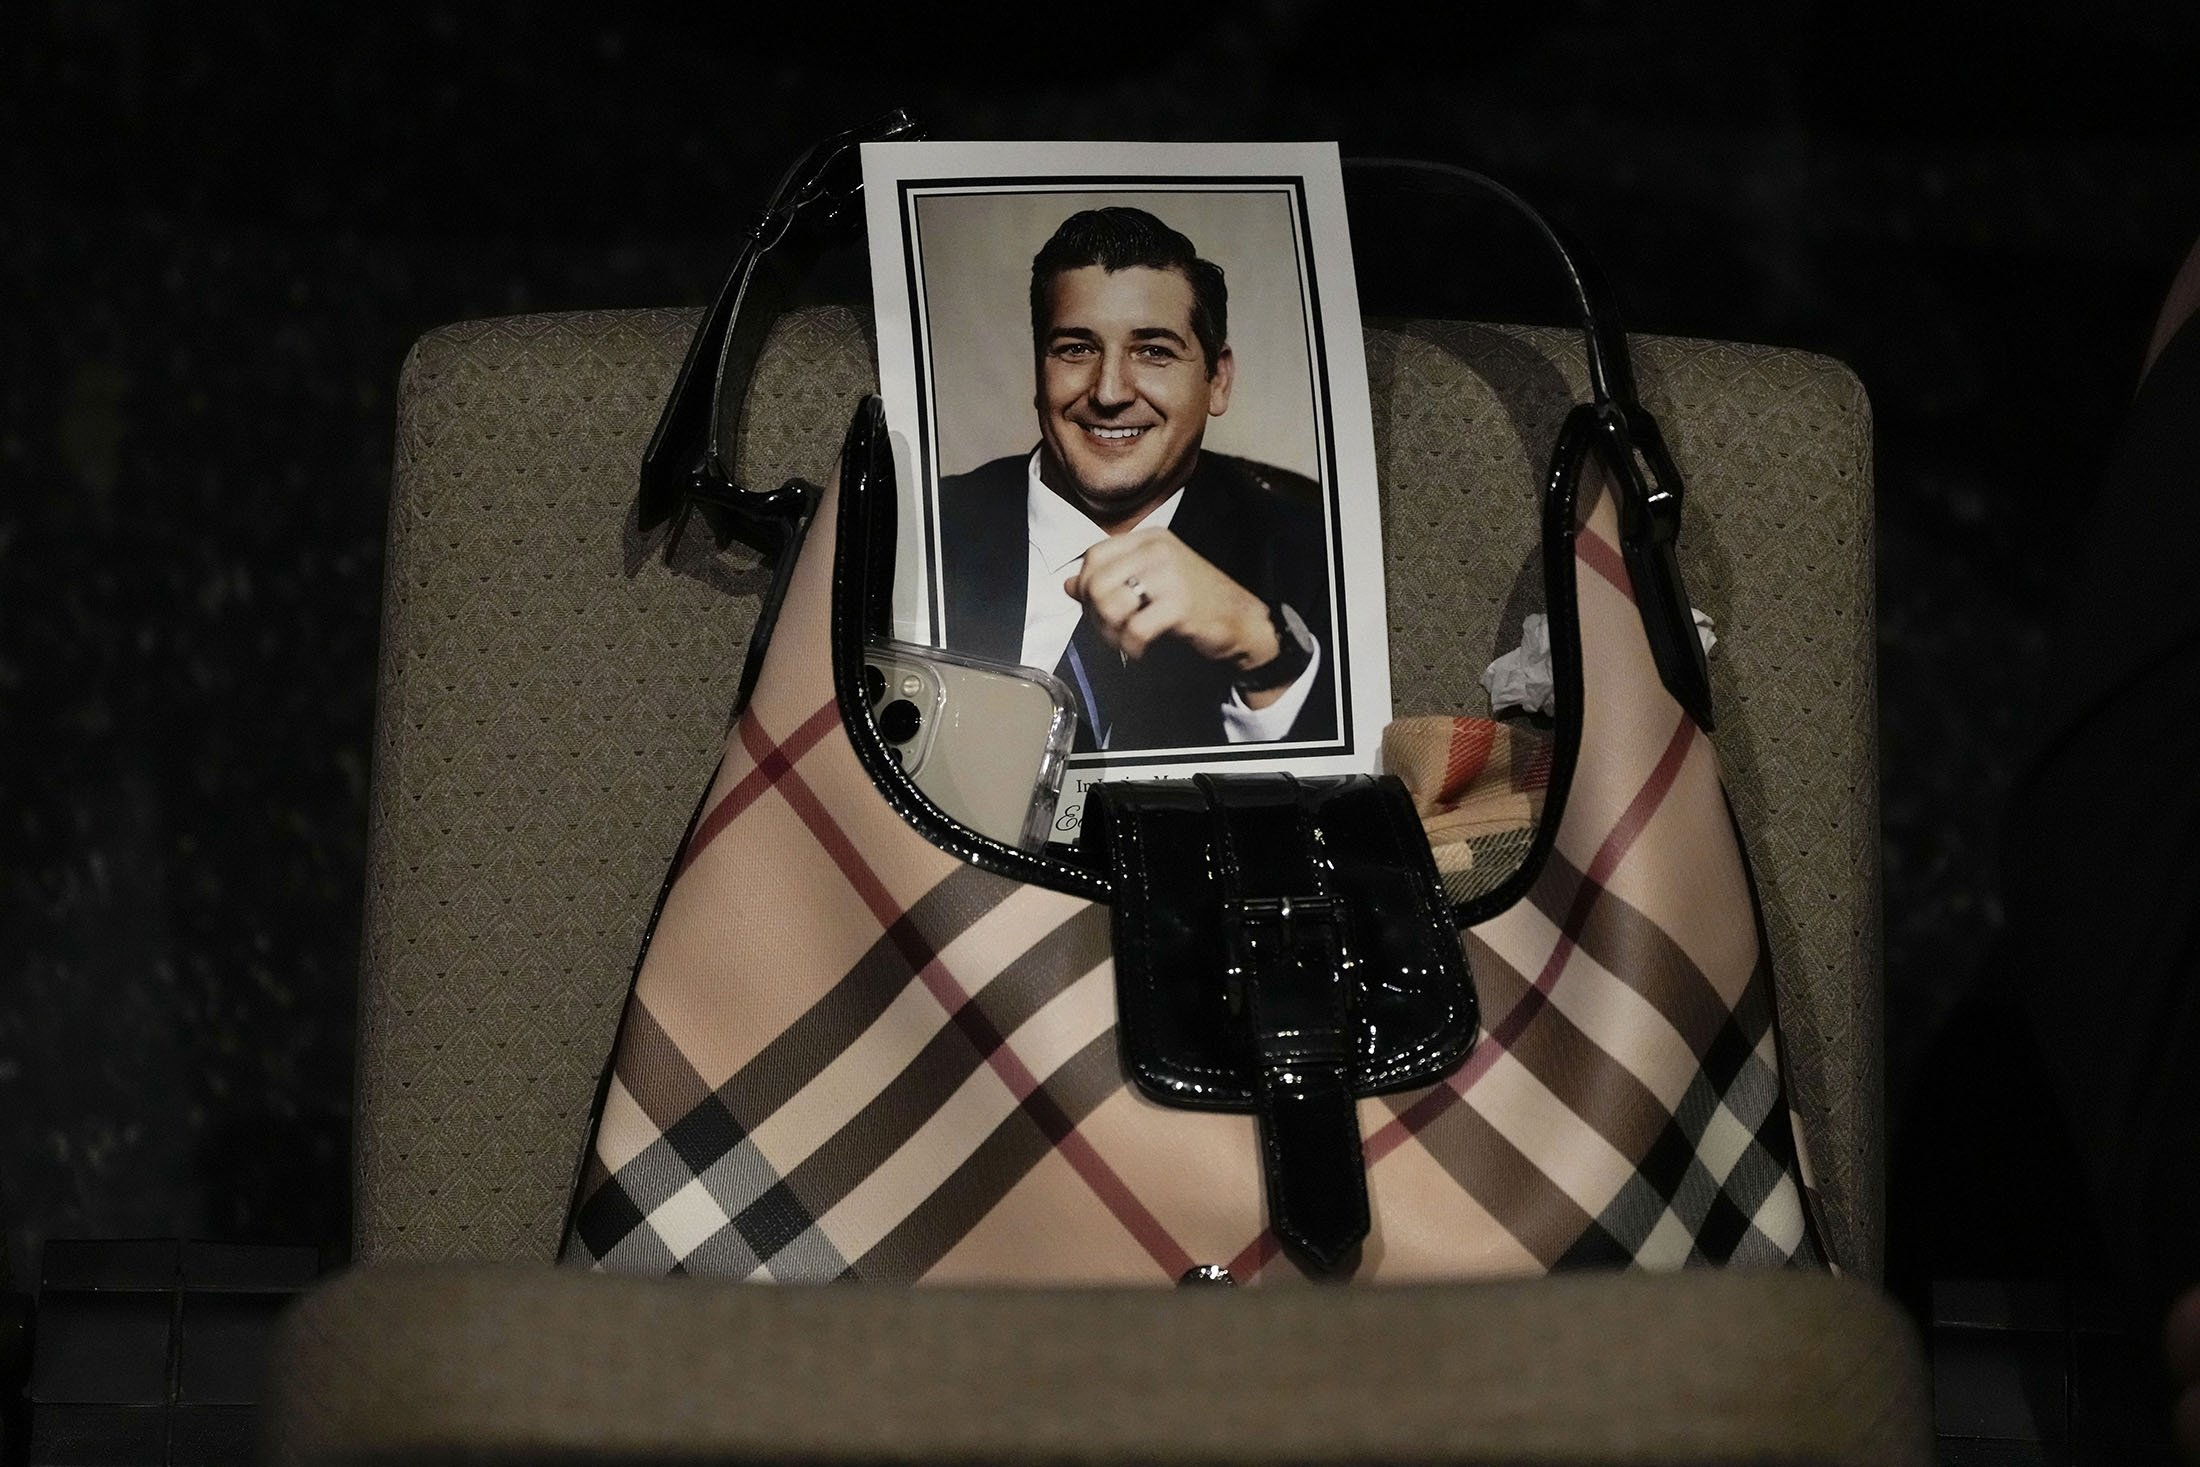 A picture of Edgar Gonzalez, 44, who was killed last month in the Champlain Towers South condominium collapse, adorns the front of a program, during his funeral service at Christ Fellowship church in Florida, U.S., July 23, 2021. (AP Photo)